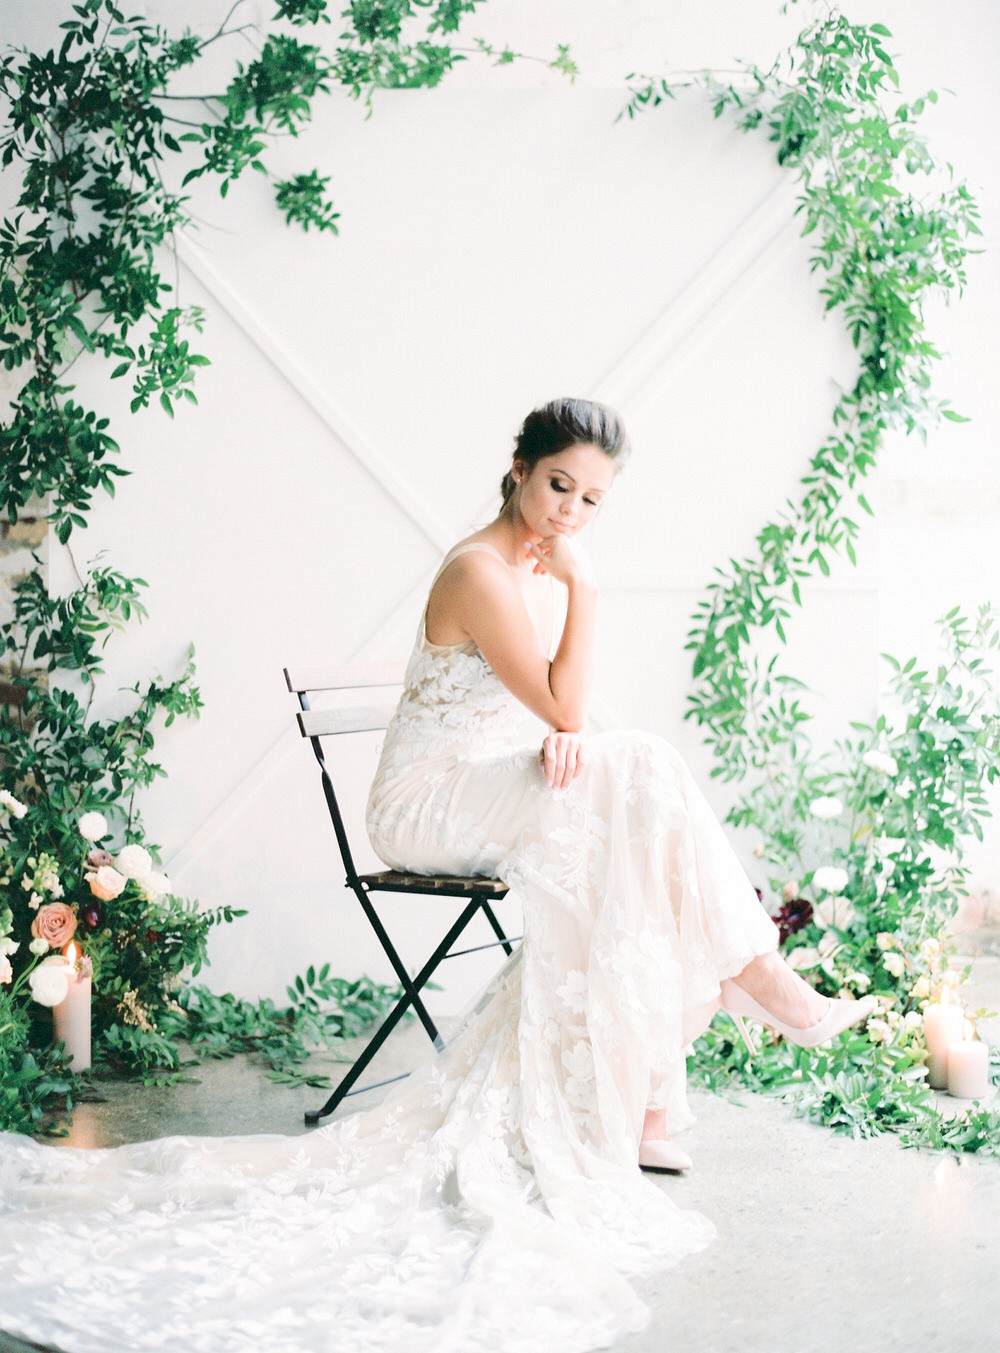 Urban loft wedding style for the fine art bride